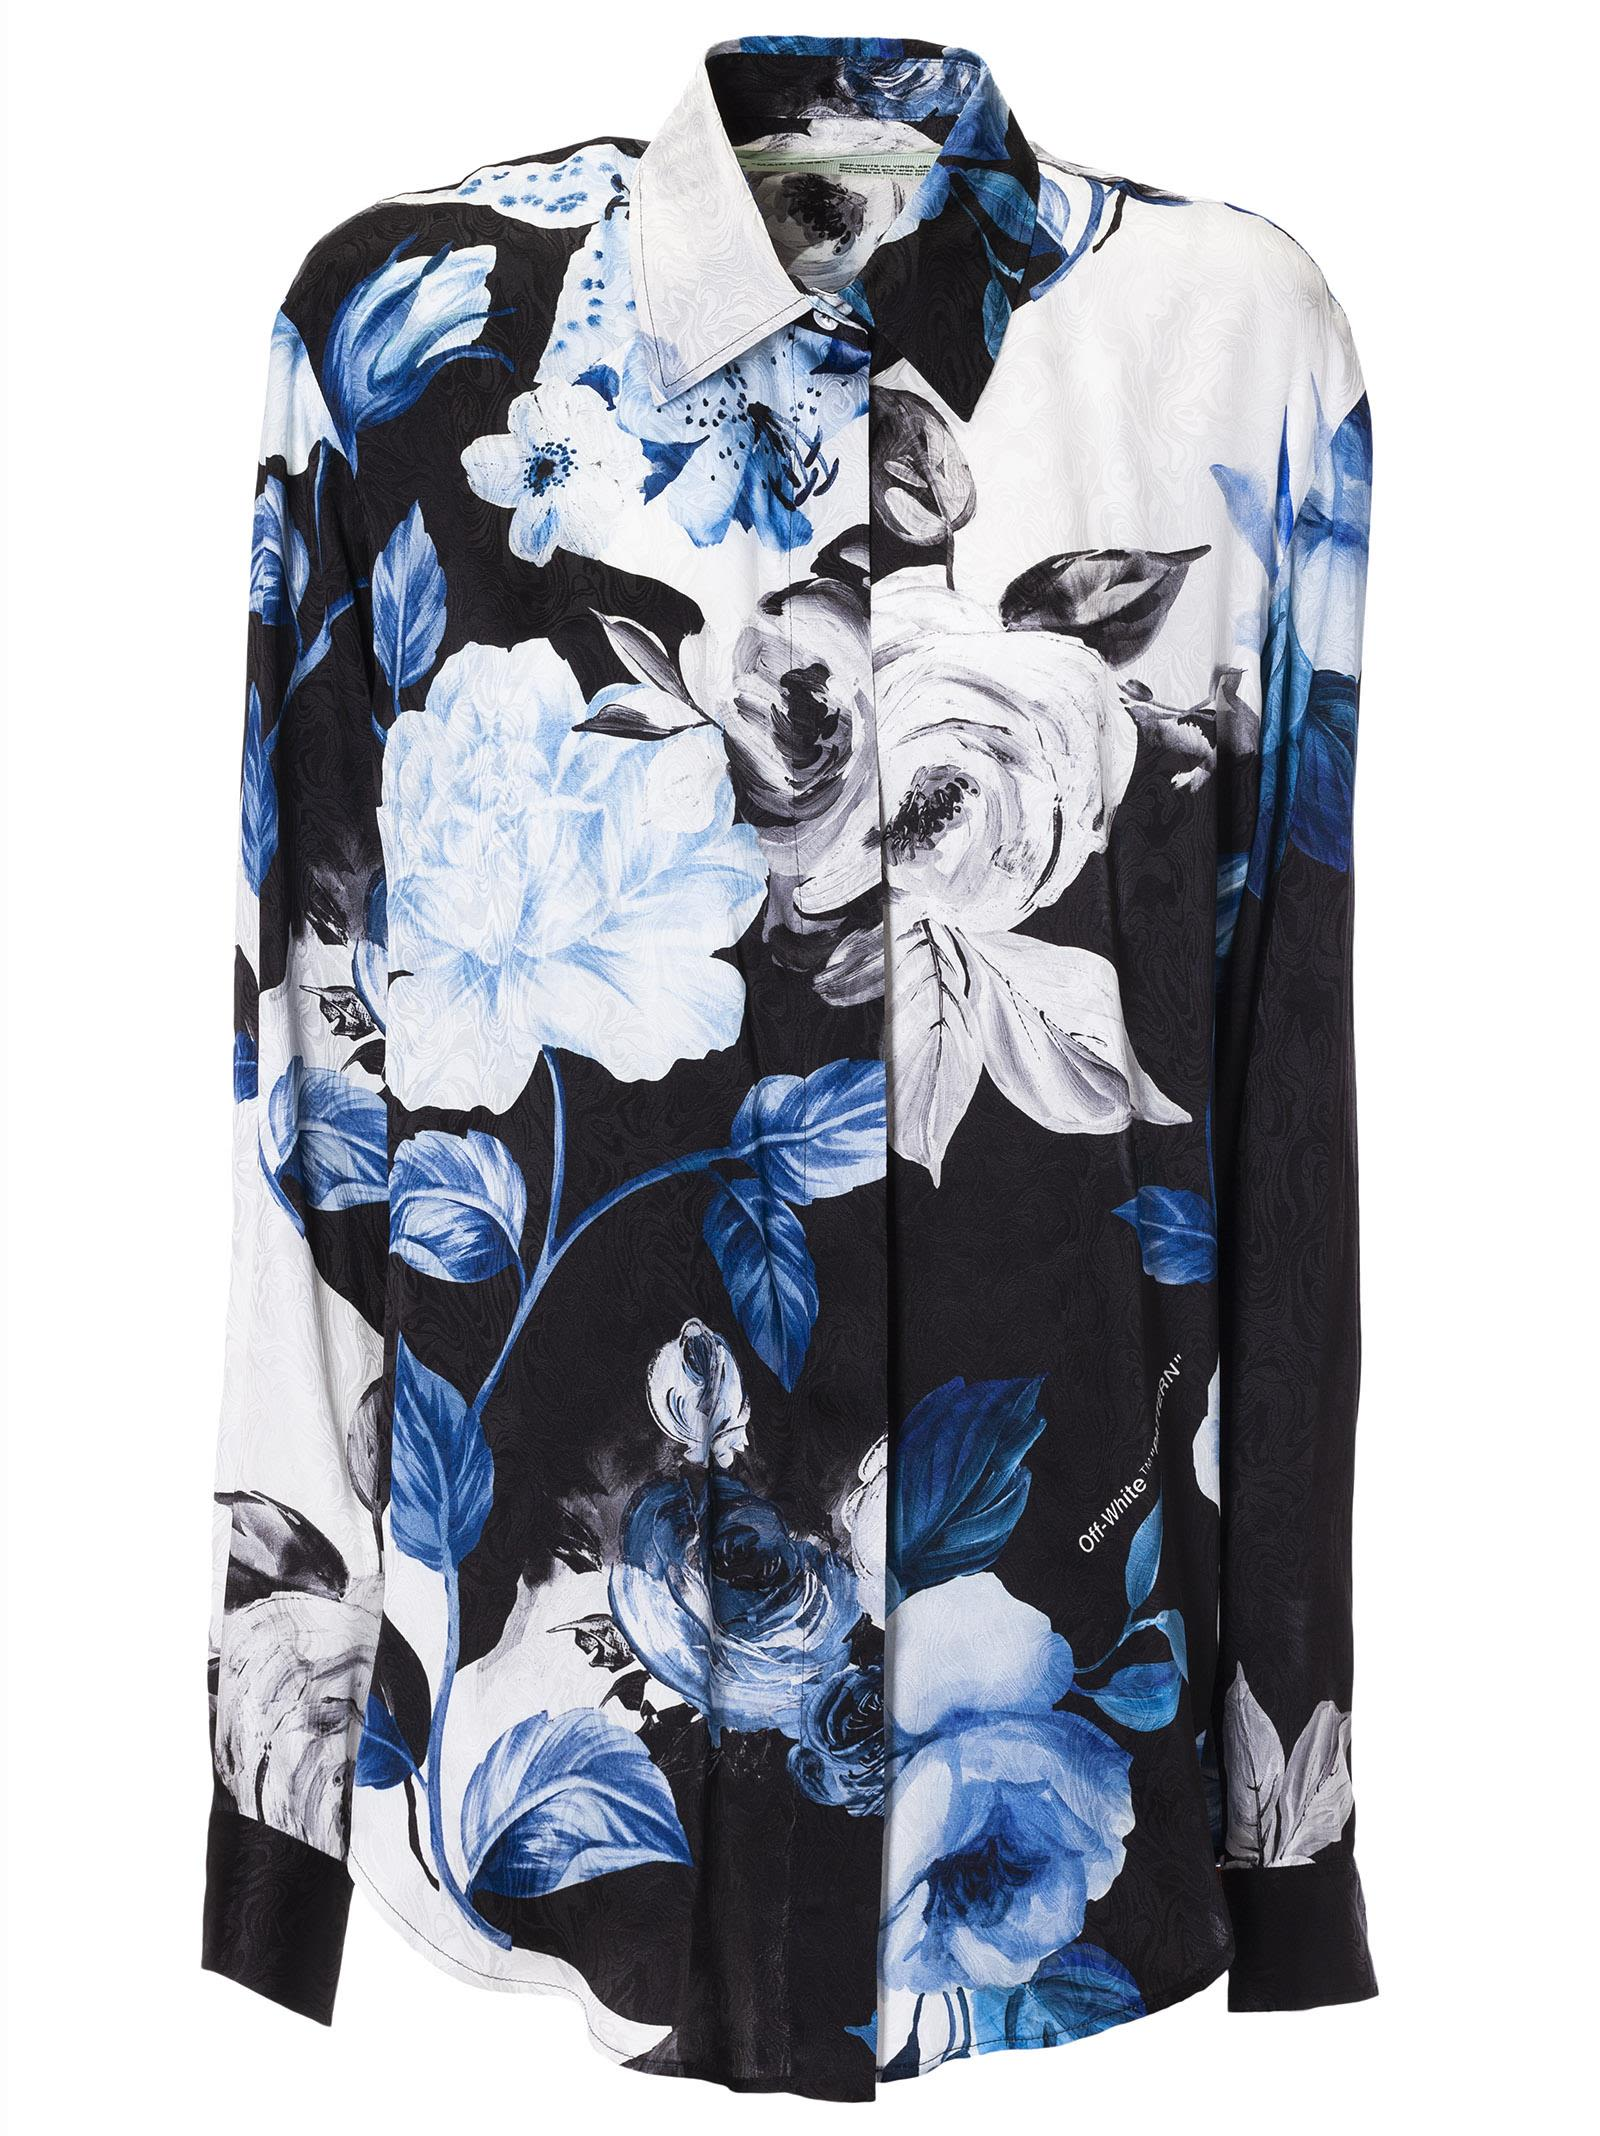 Off-white Floral Shirt